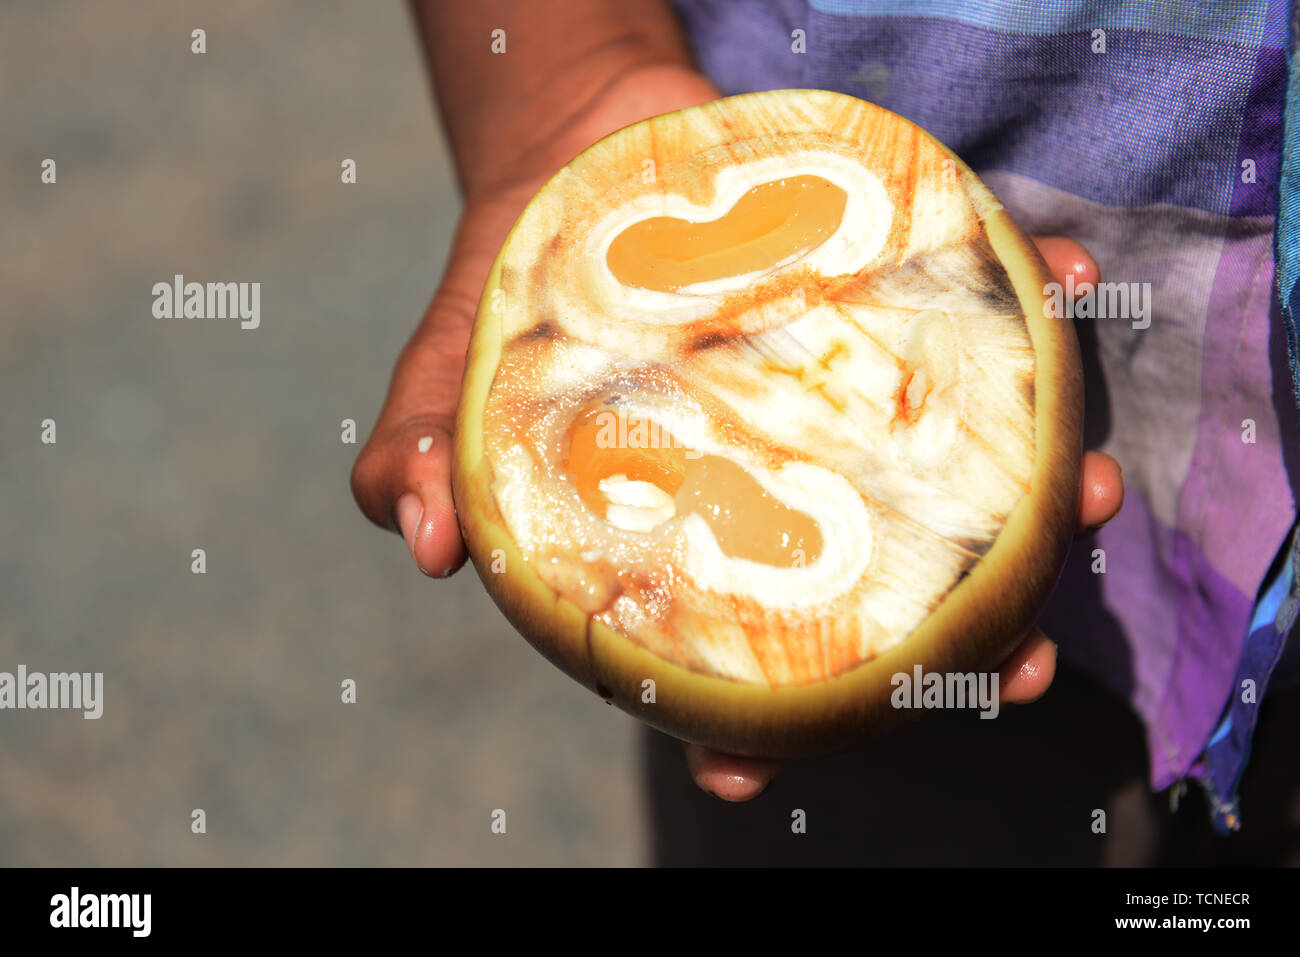 A Tamil boy holding an opened Palmyra fruit. - Stock Image